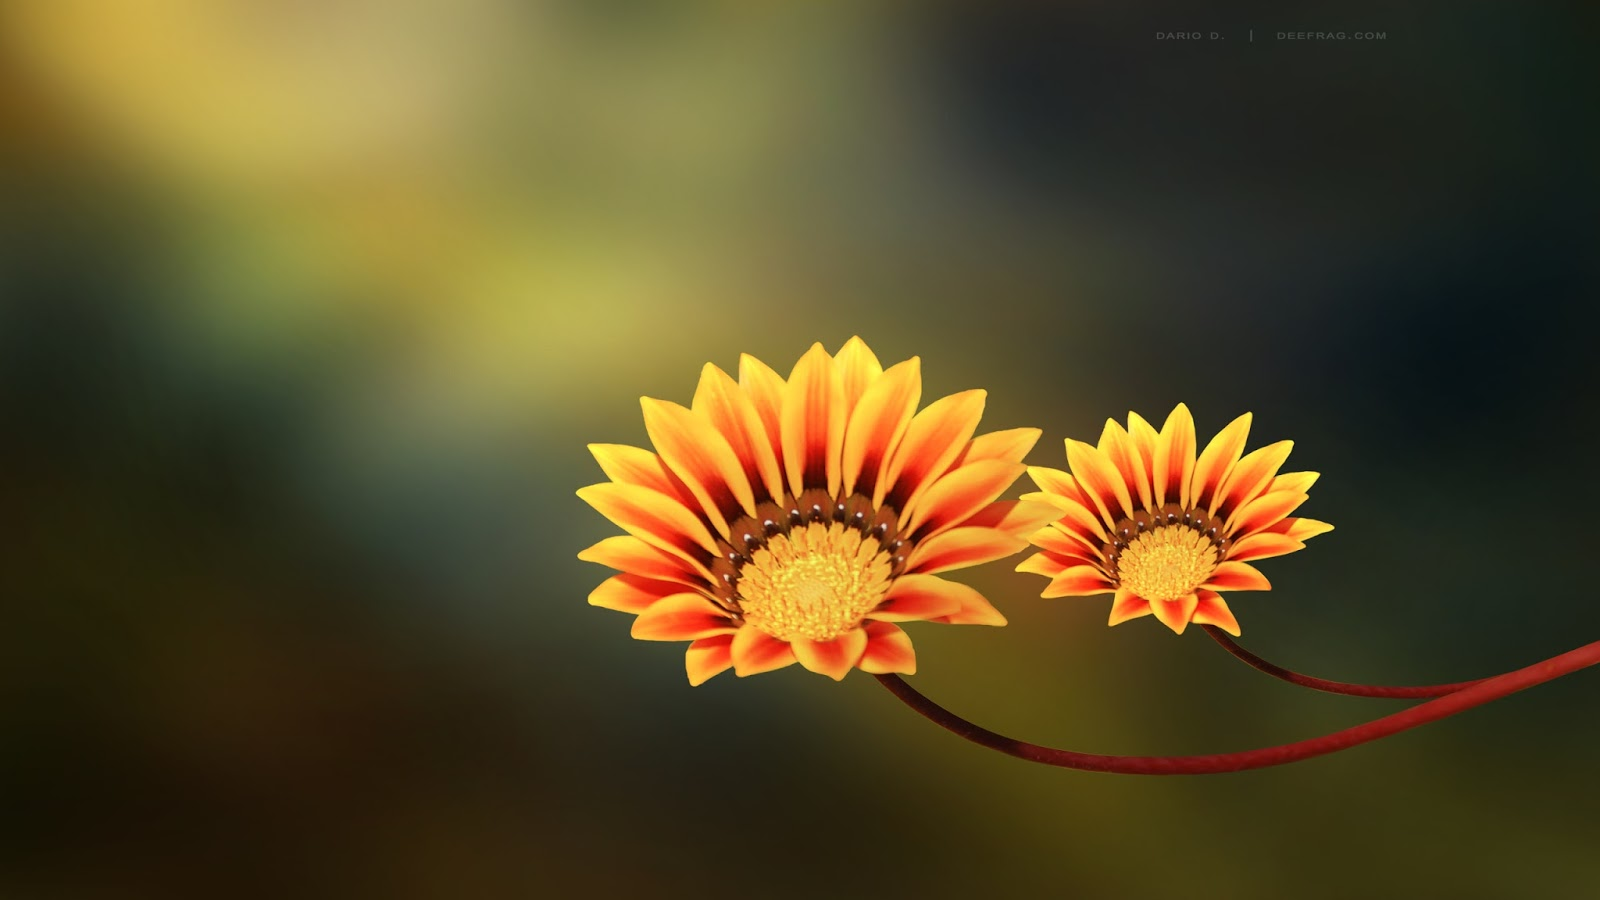 flowers for flower lovers.: beautiful flowers desktop wallpapers.